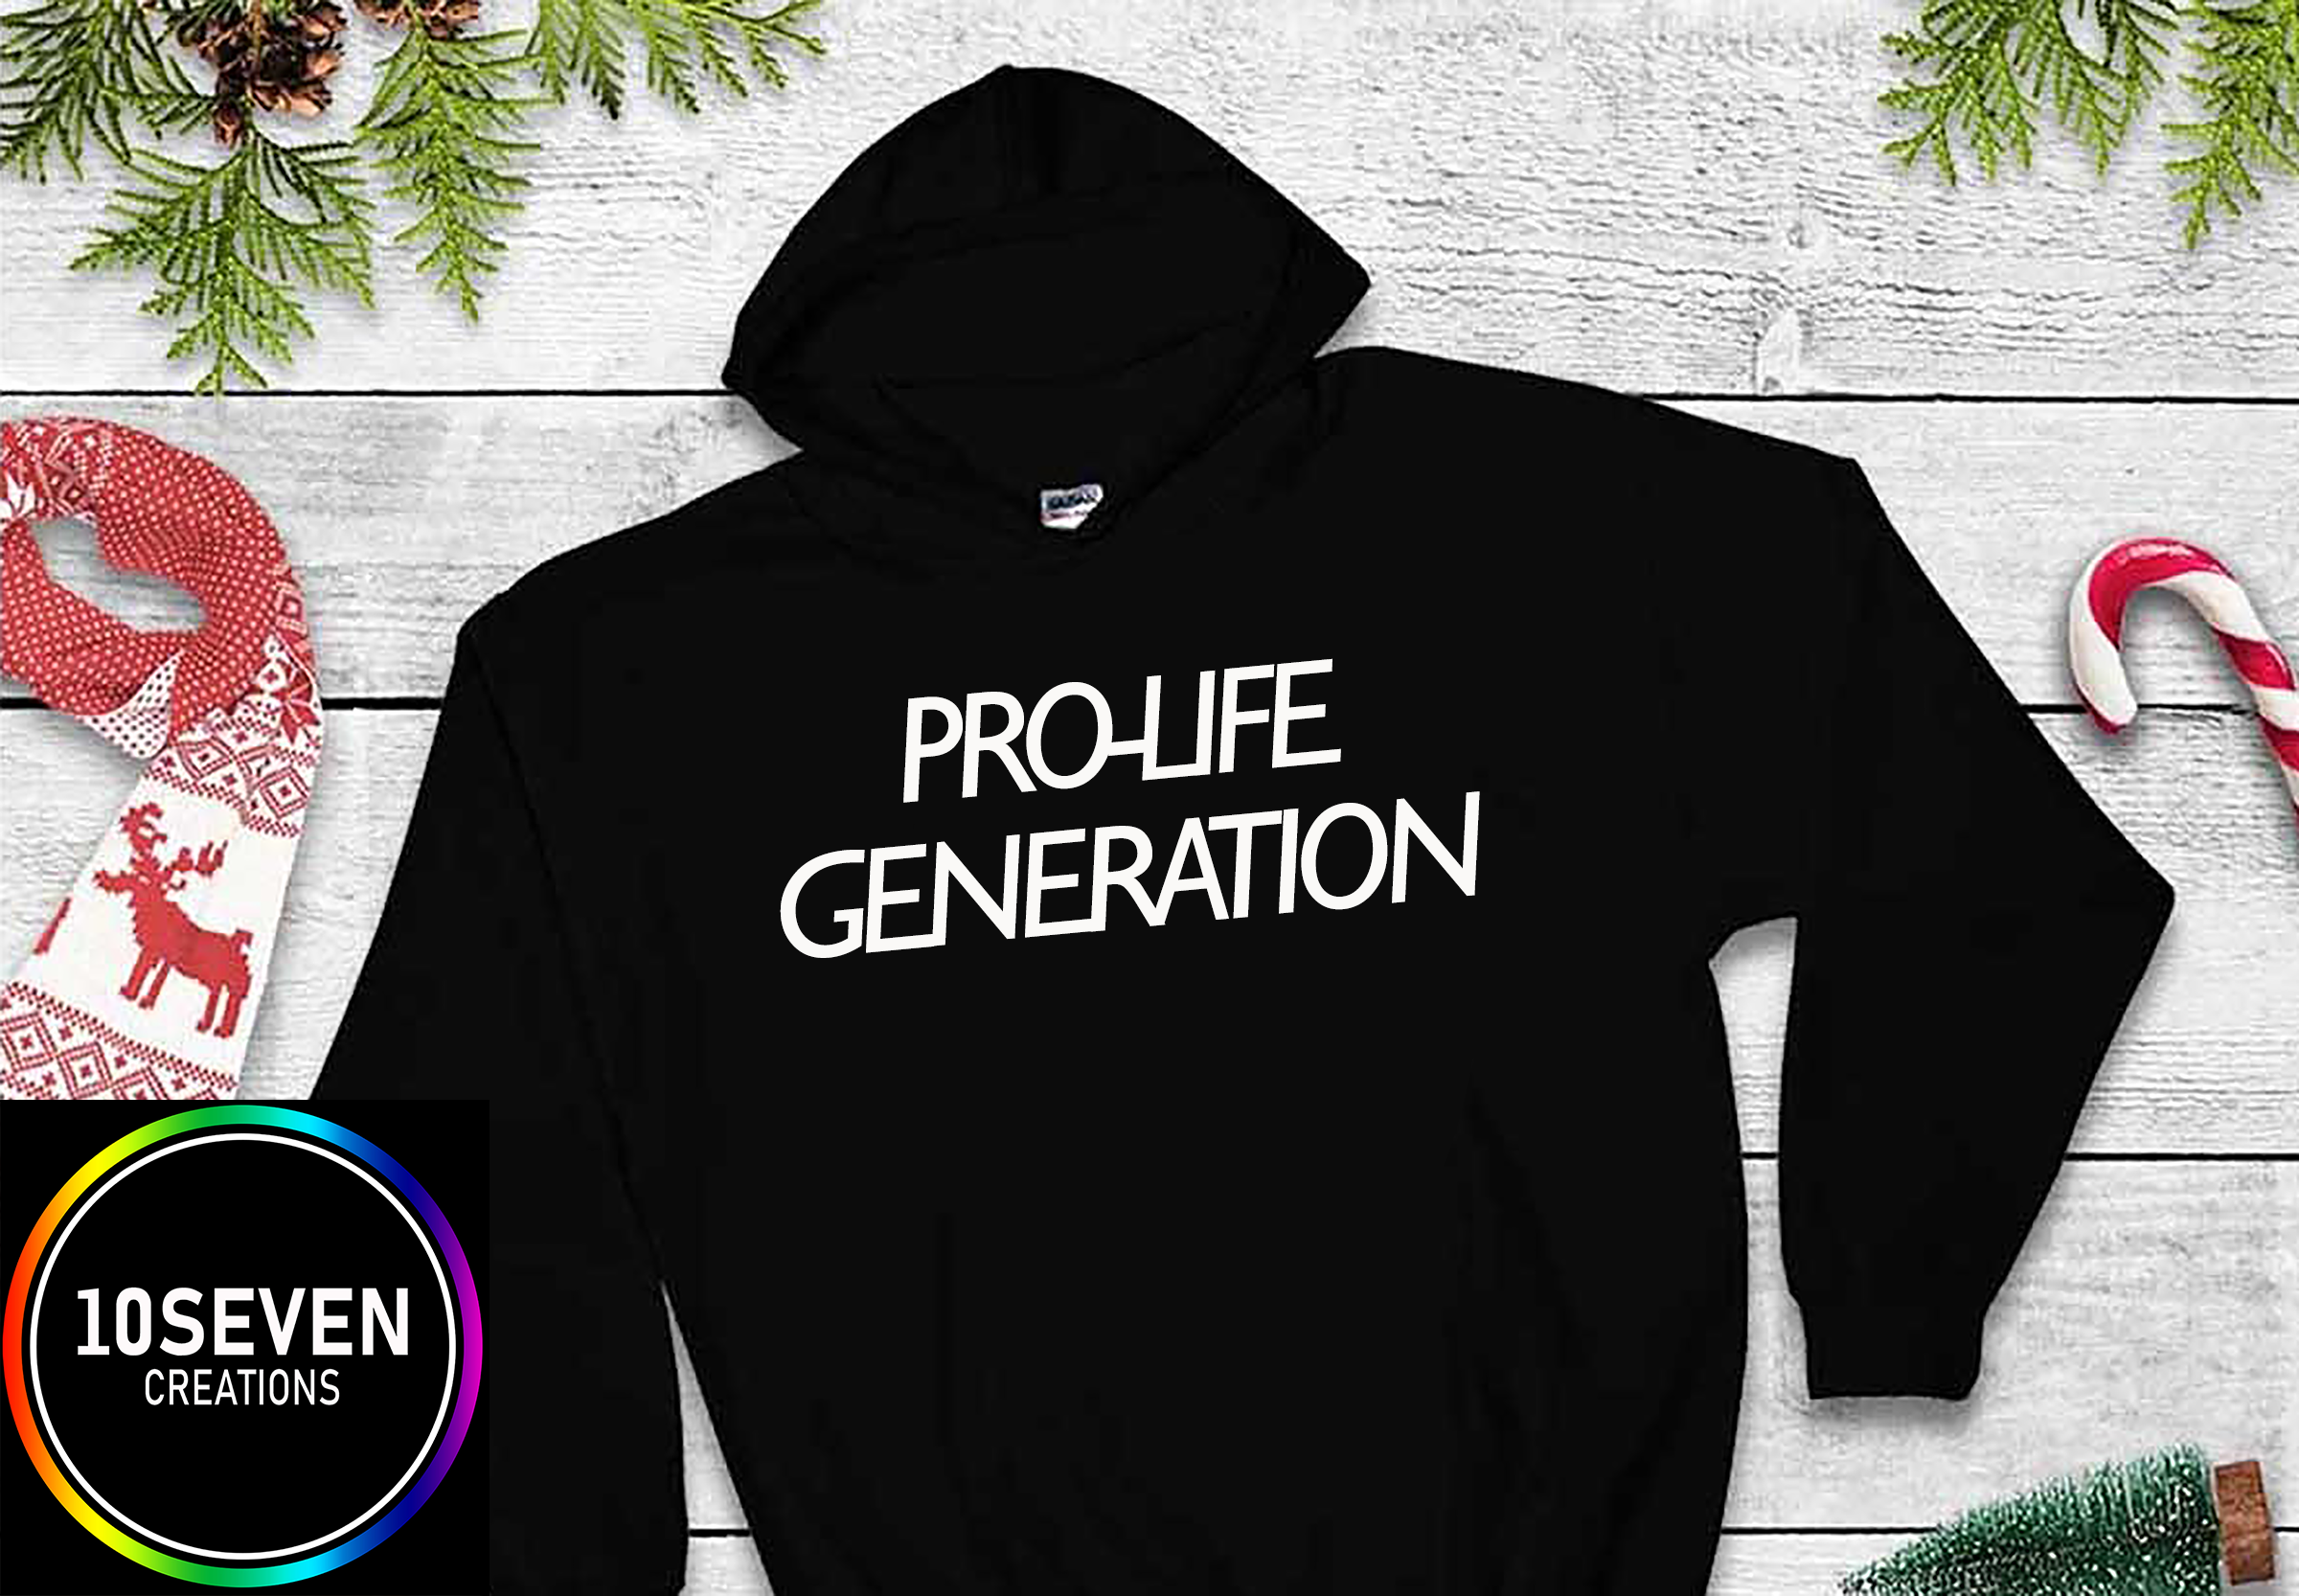 PROLIFE GENERATION MOCK-UP